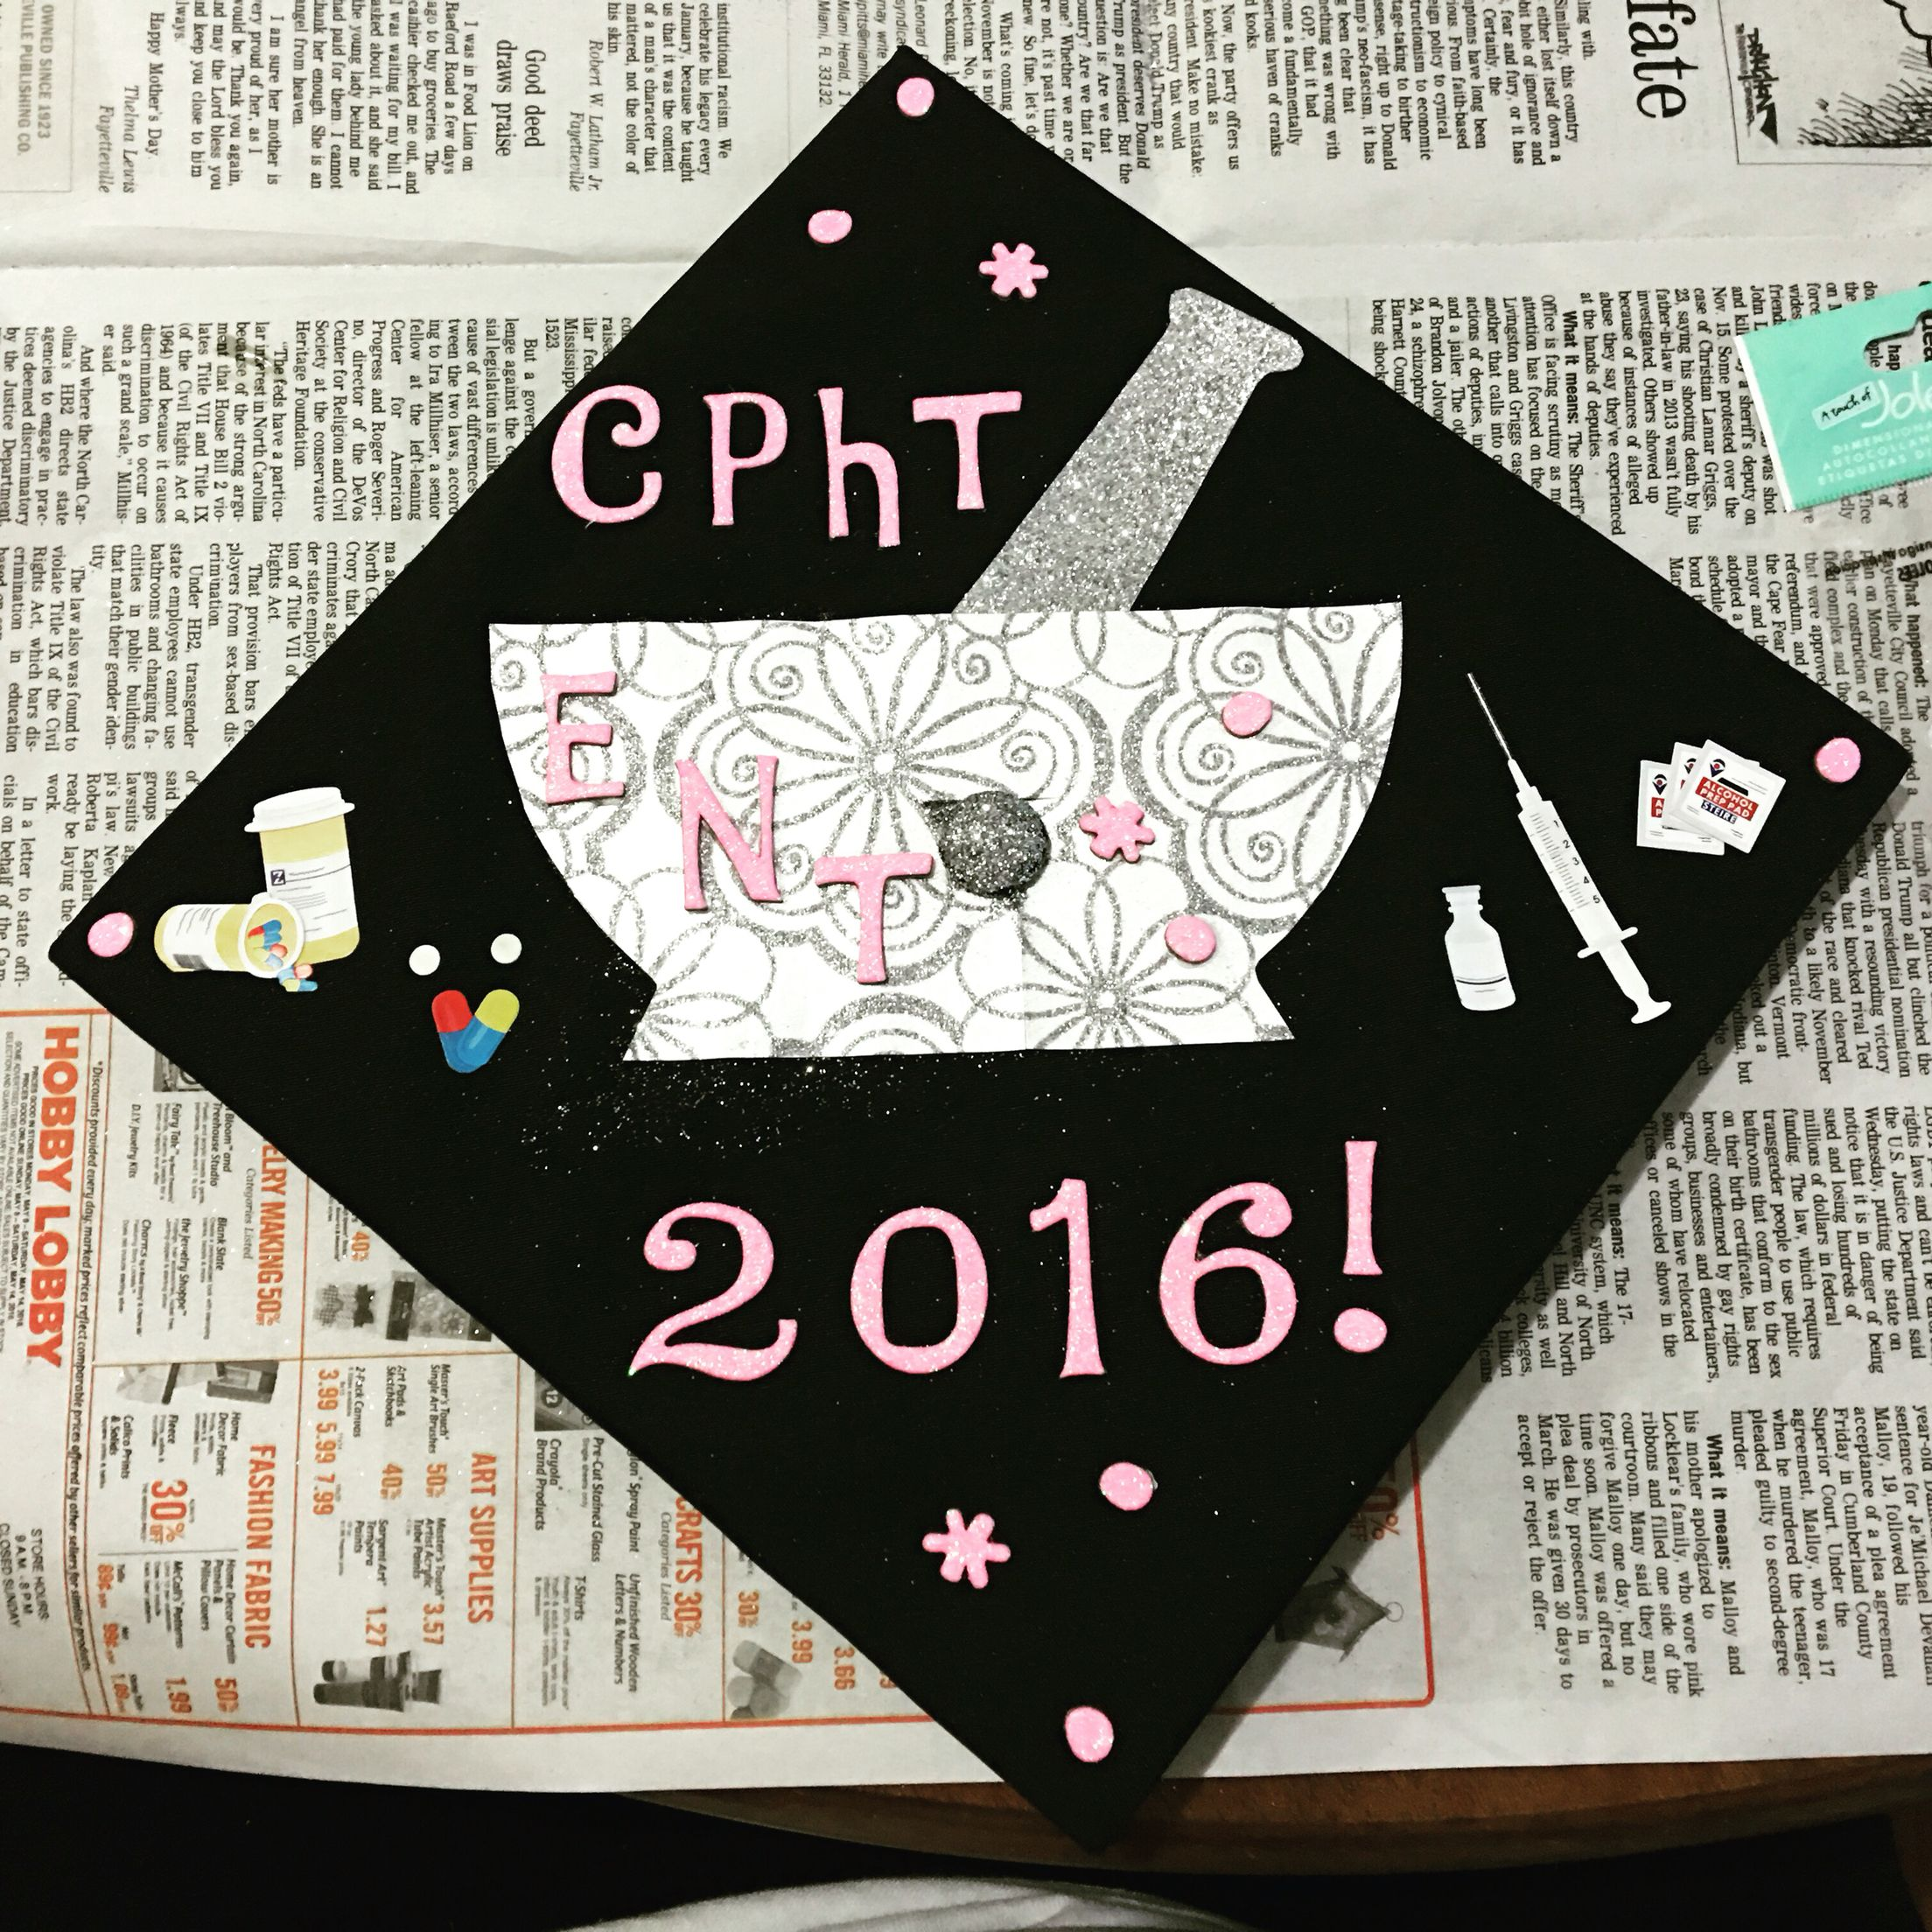 Fullsize Of Graduation Cap Quotes